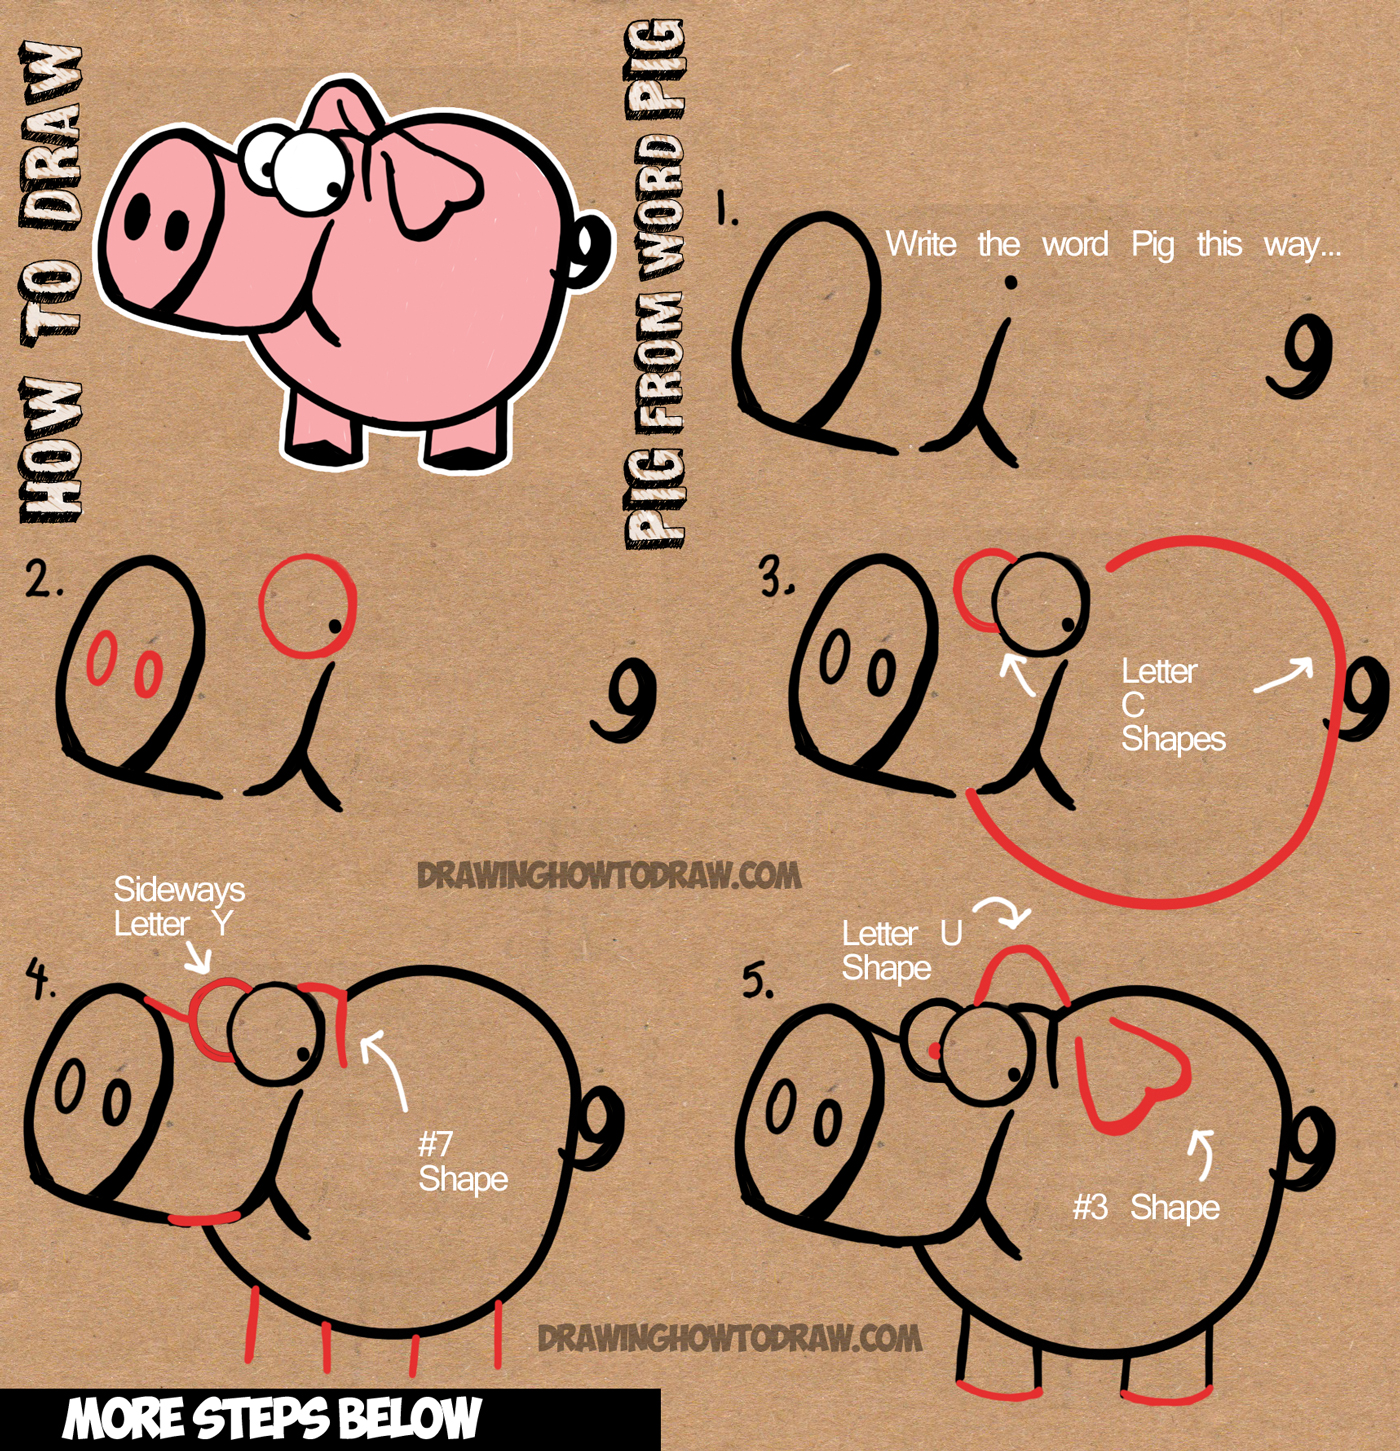 How to Draw Cartoon Pig with the Word Pig Step by Step Drawing Tutorial for Children